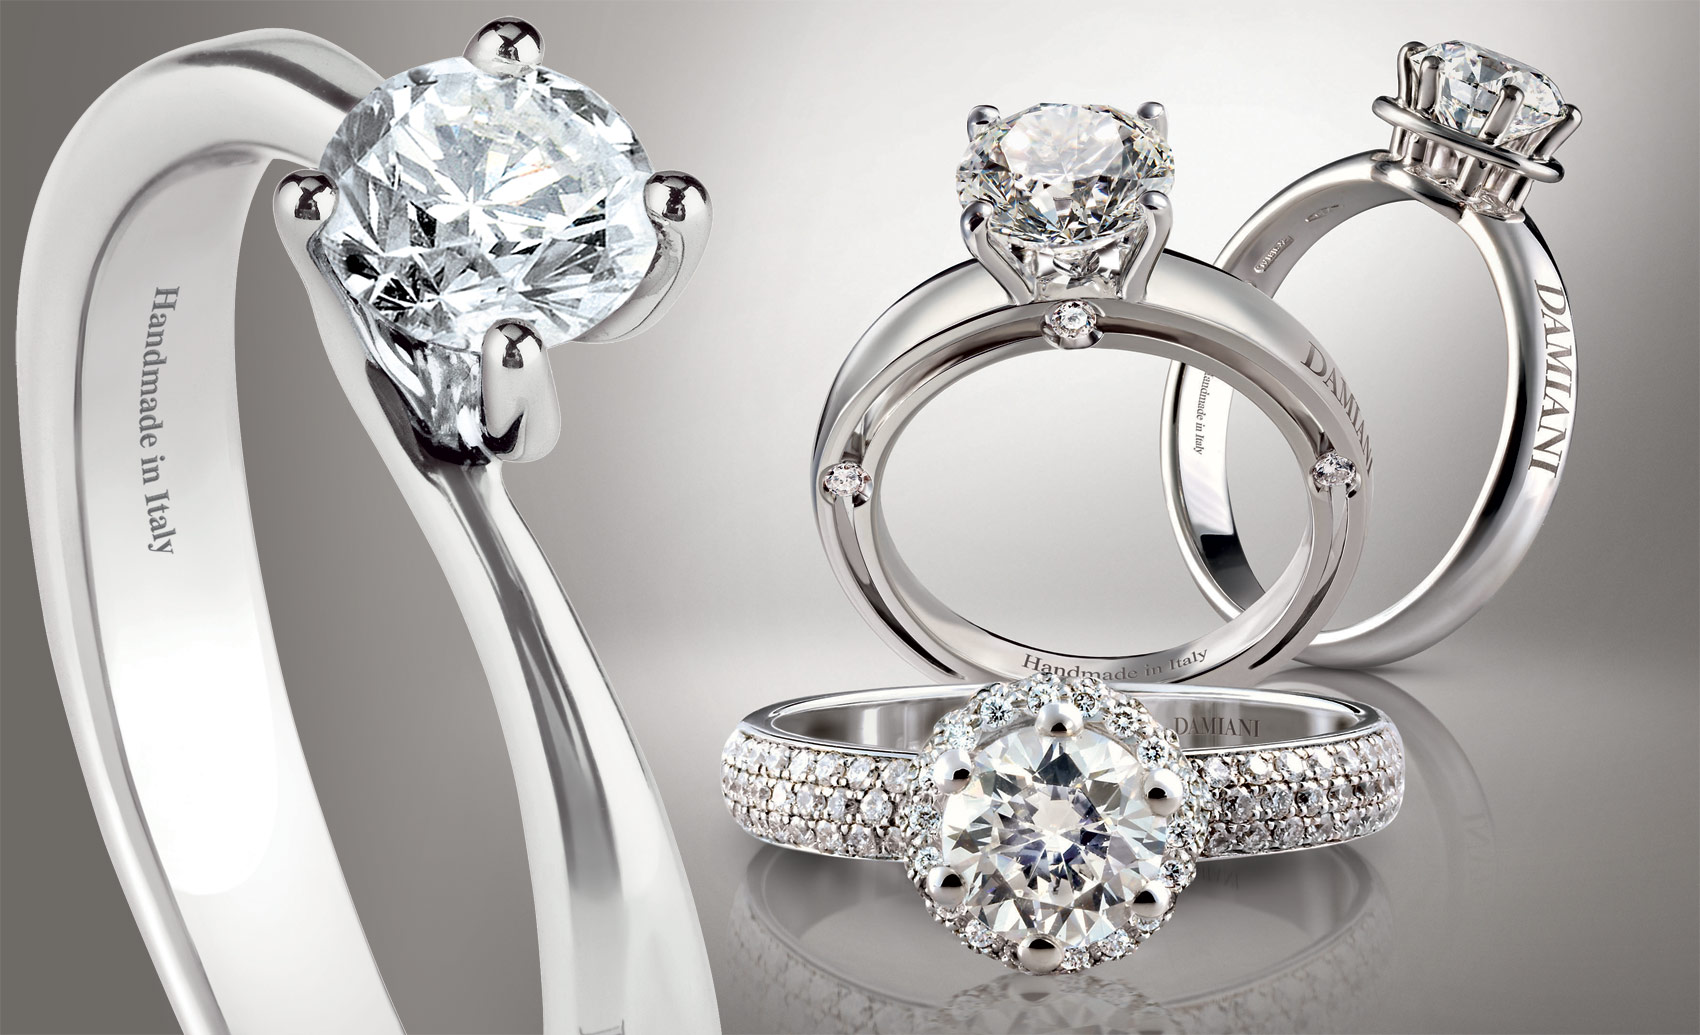 Exploring The Sparkling Allure Of Damiani's Diamonds